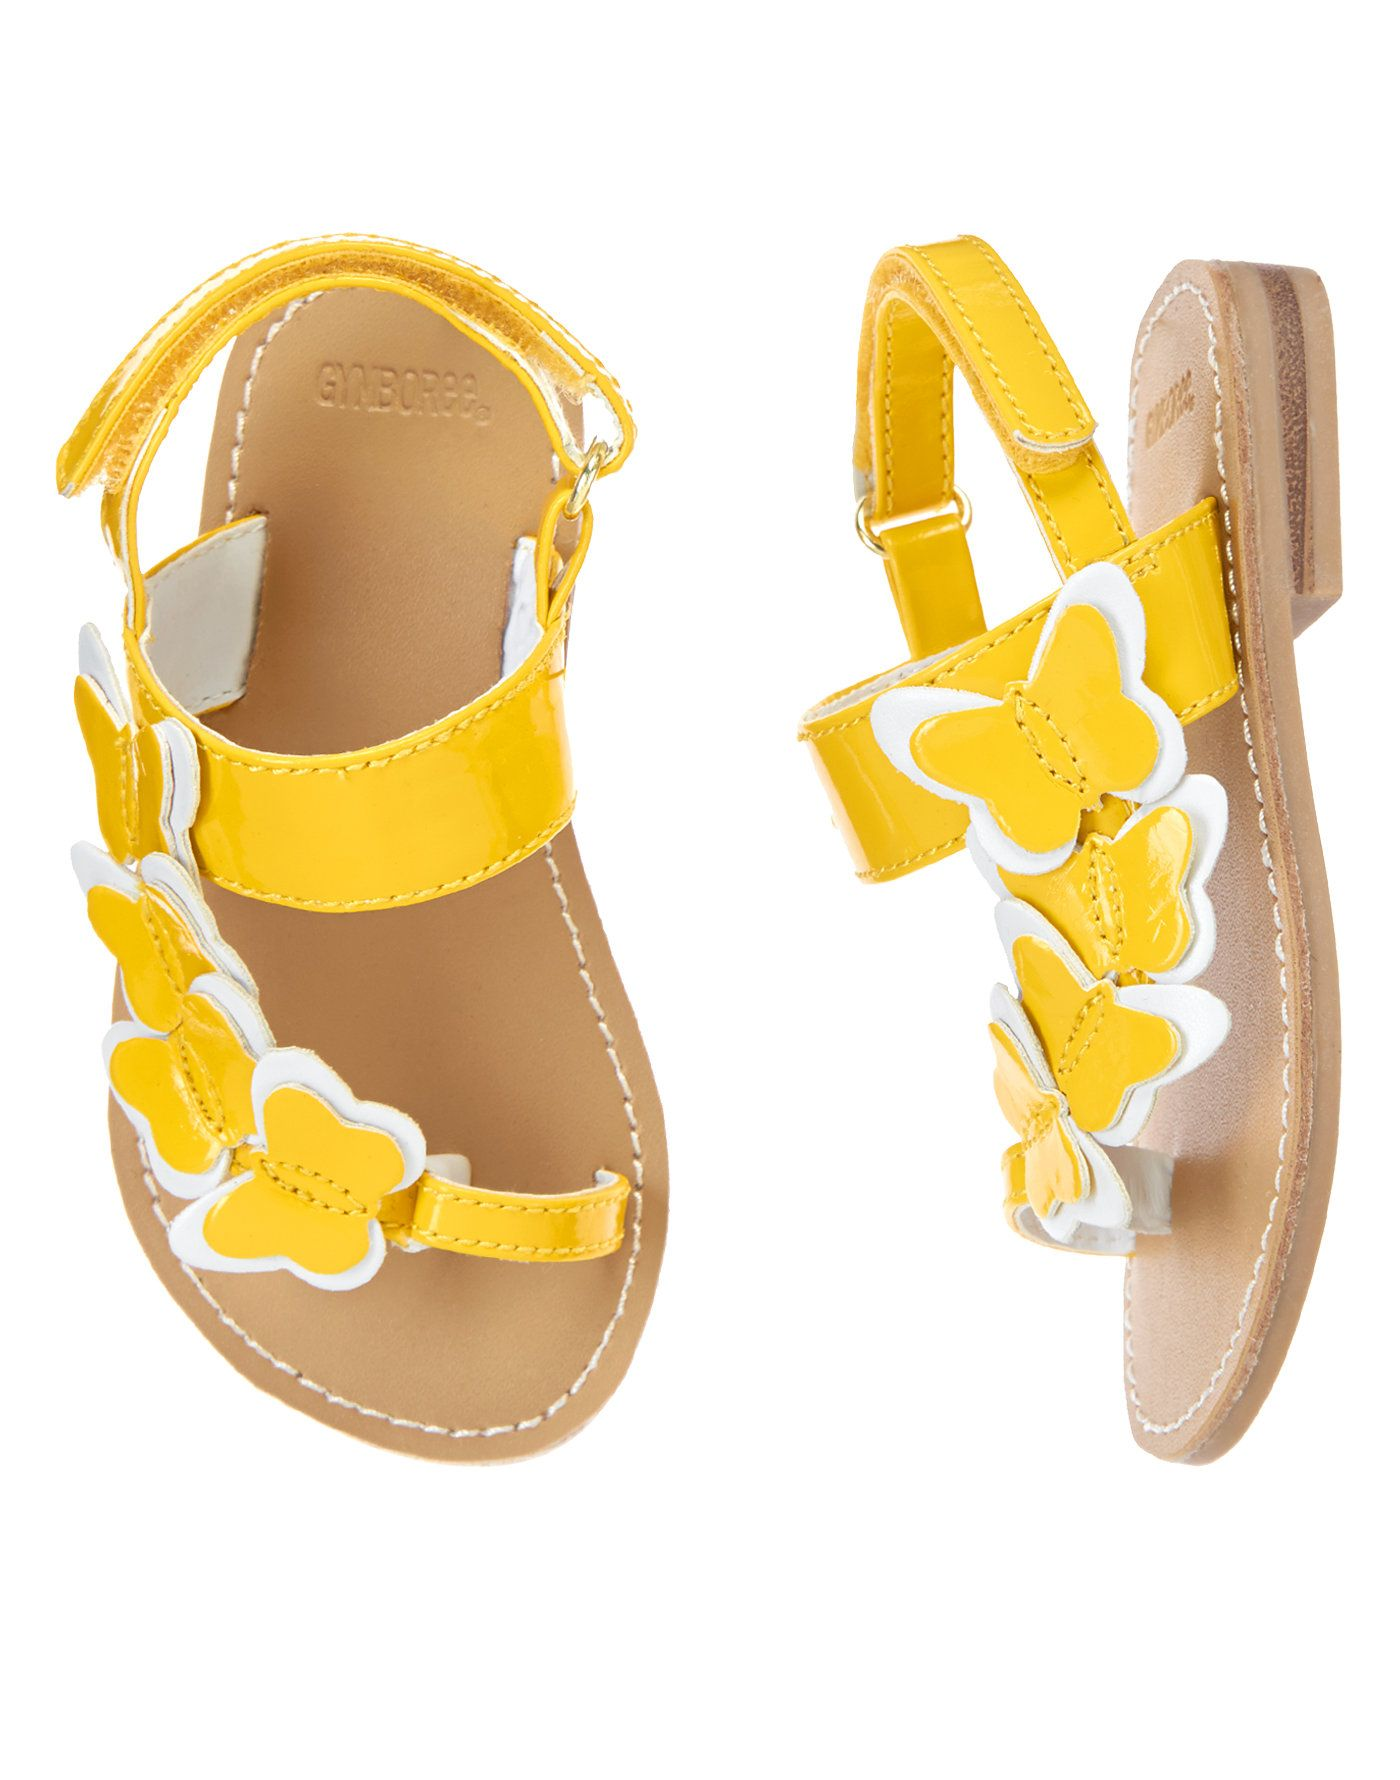 835945c6636992 Butterfly Sandal at Gymboree